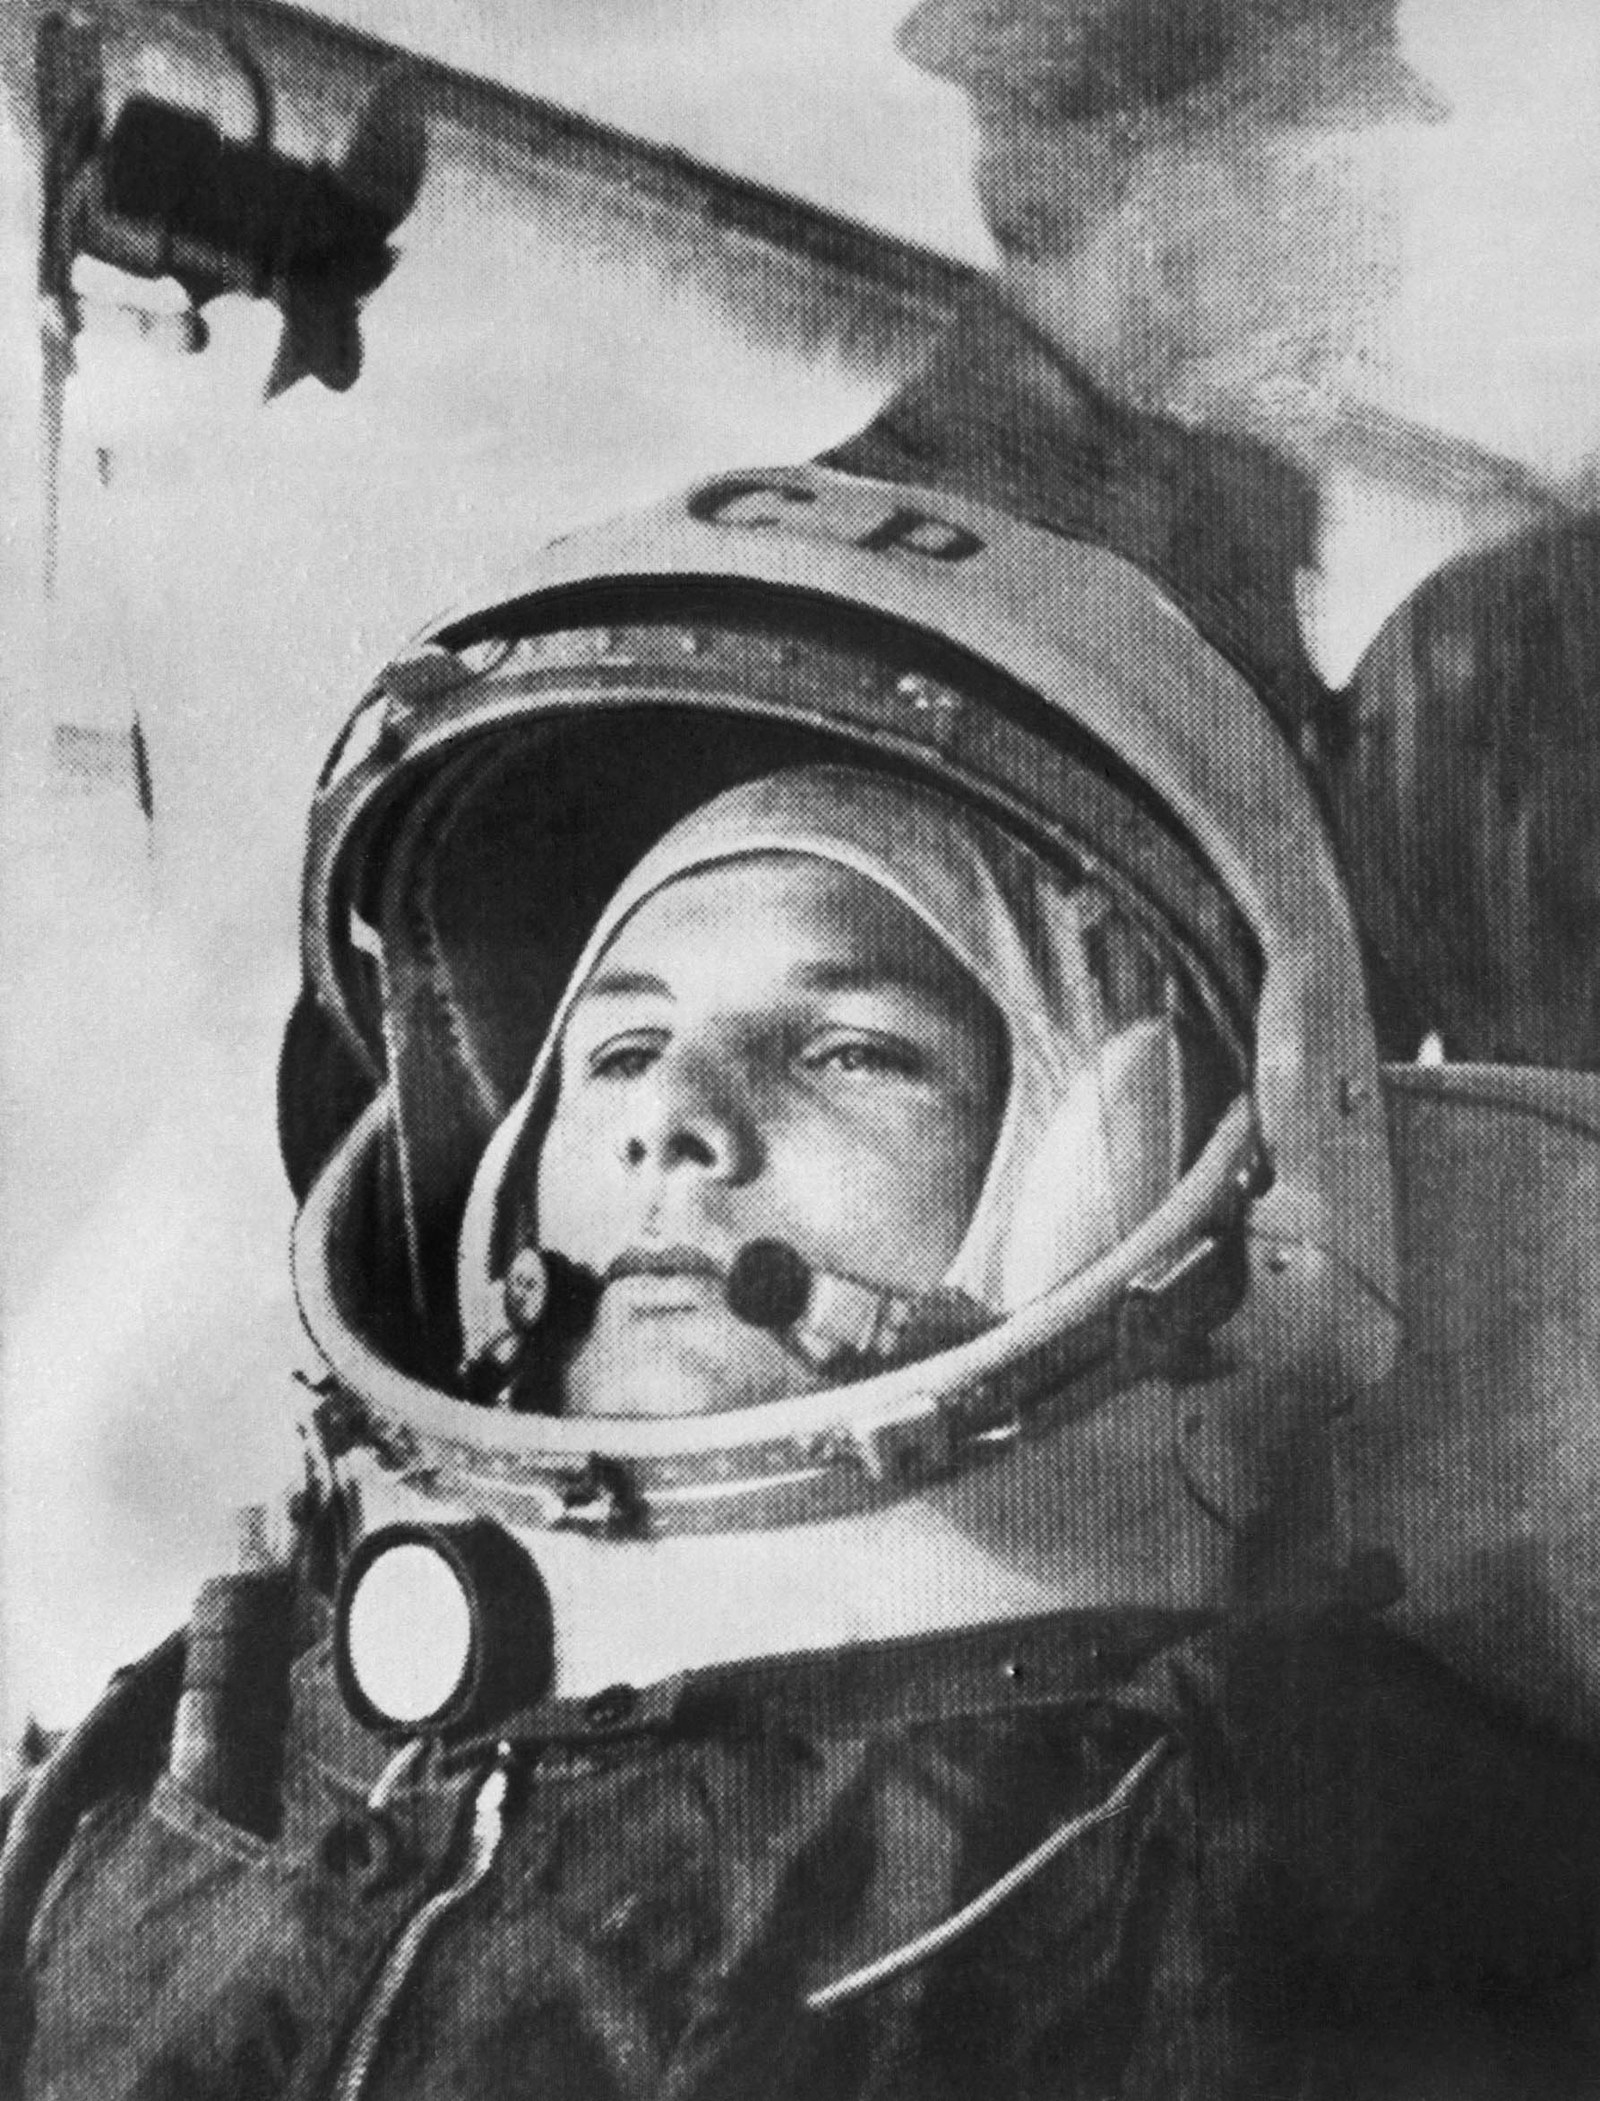 1961 Soviet pilot Yuri Gagarin on his way to become the first person to orbit the Earth in the Soviet rocket Vostok 1.